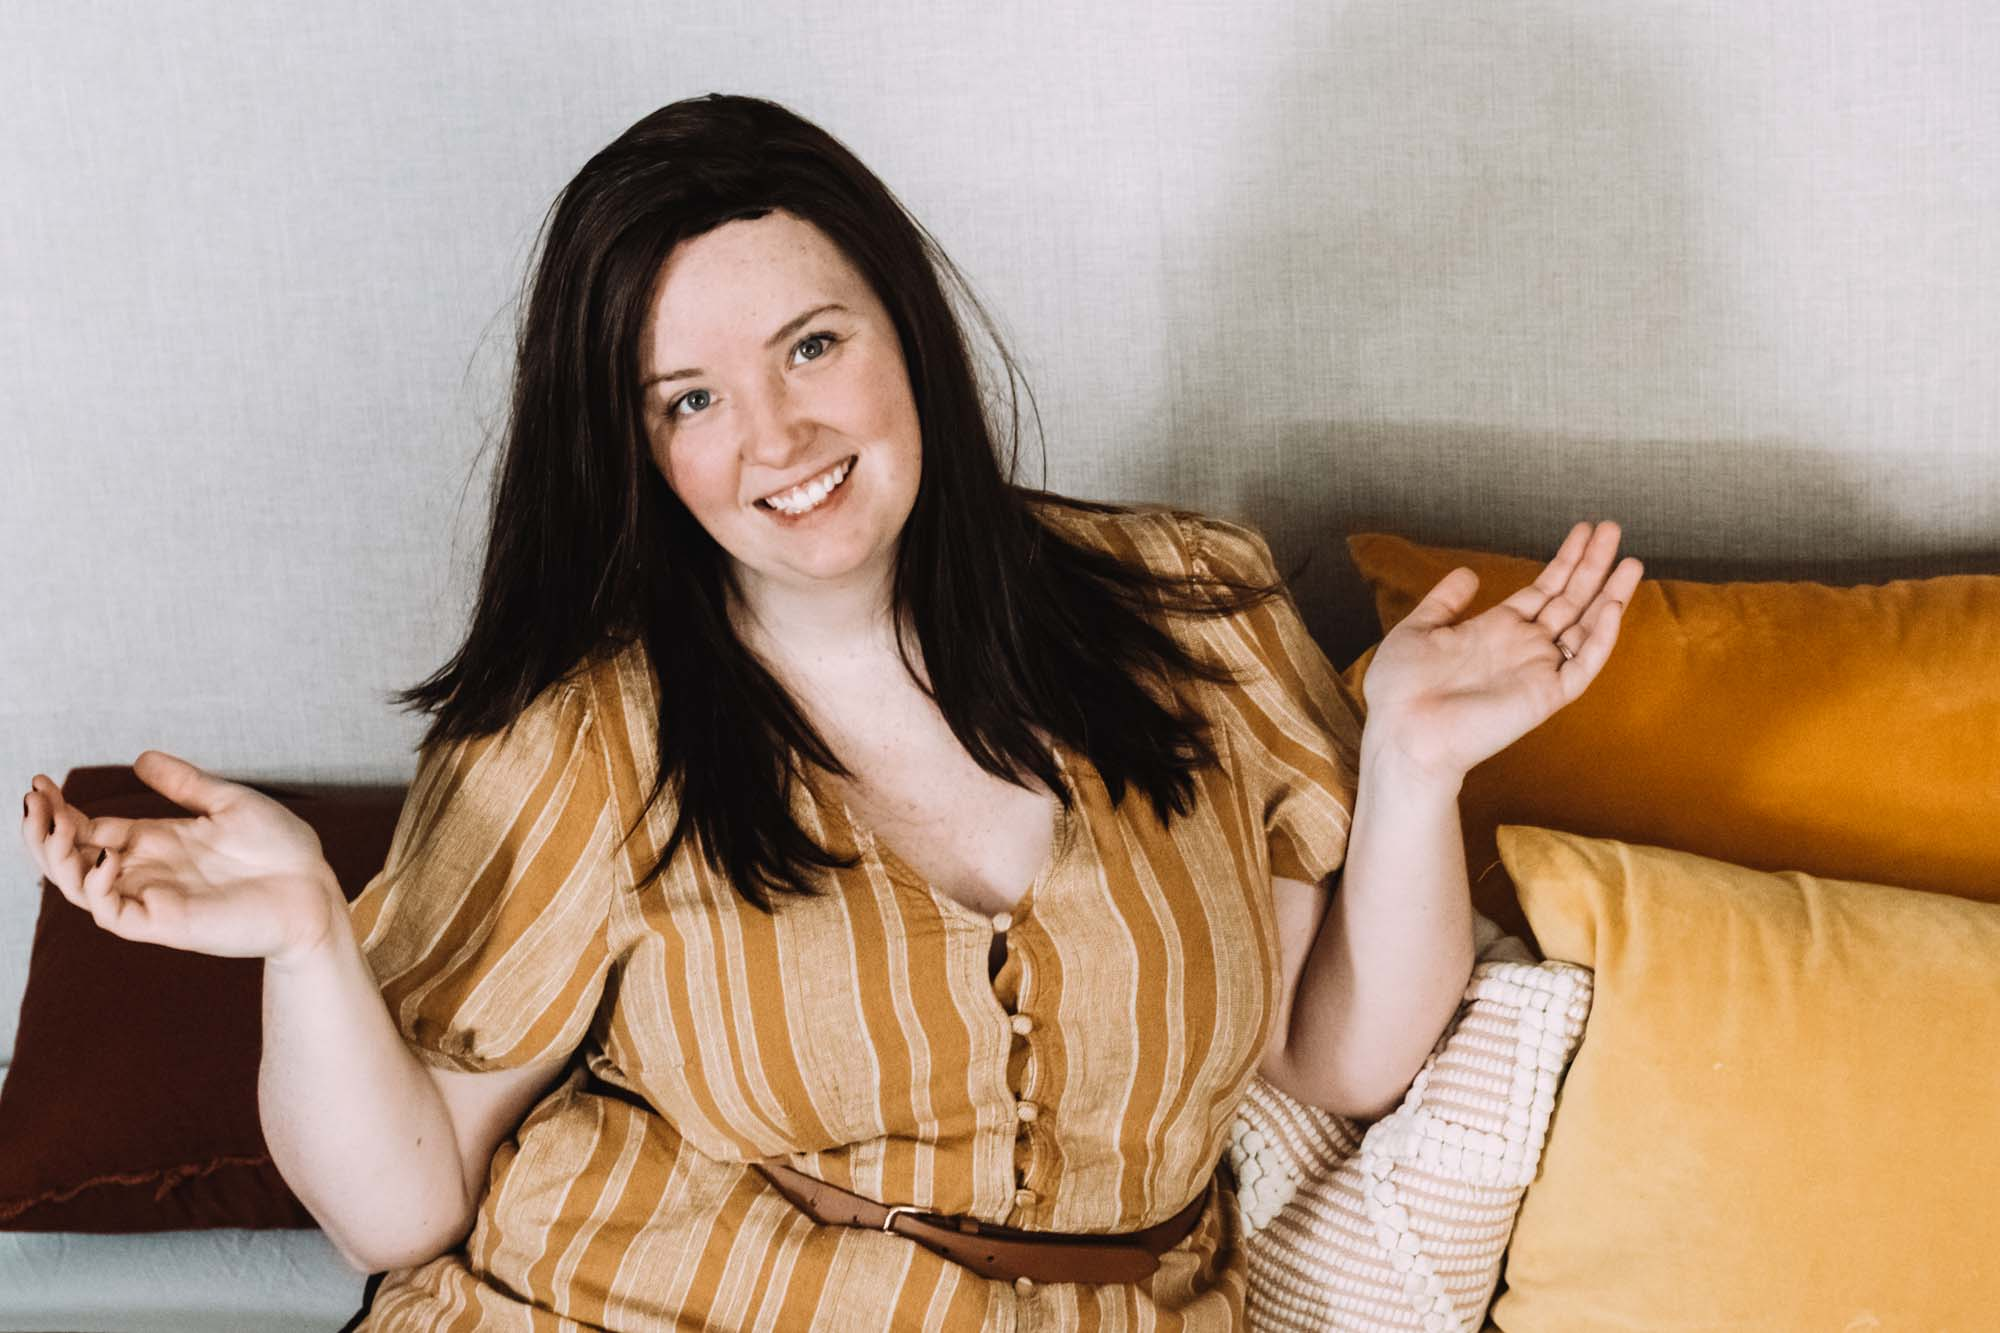 Catherine Ballard sitting on a bed with gold pillows for the Adjustable Split King Mattress Annoyances post.